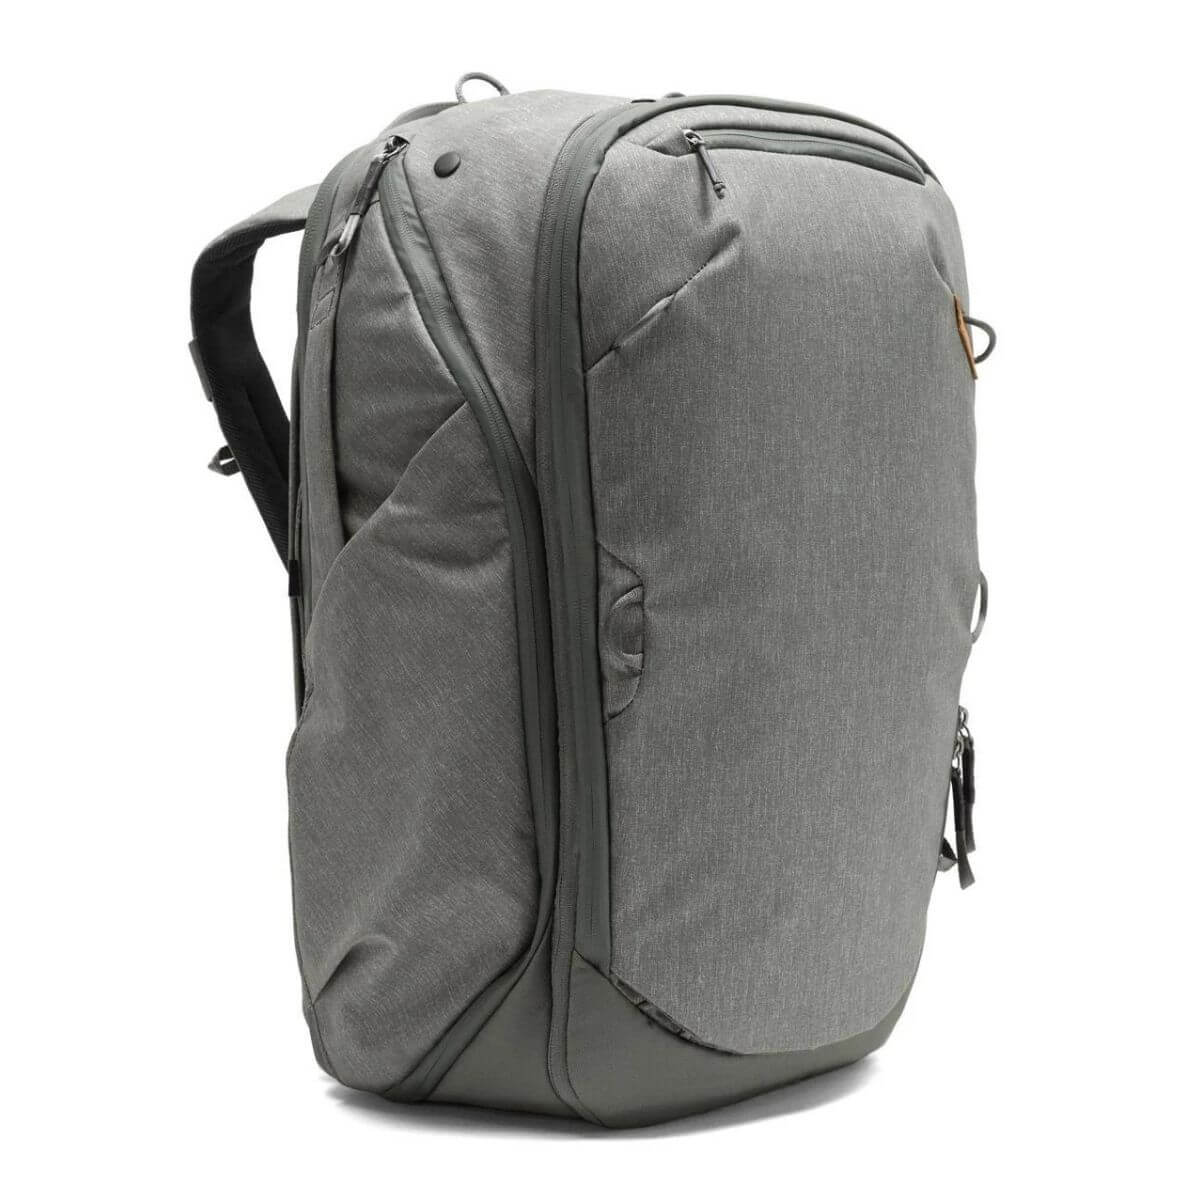 Grey Peak Design travel backpack.